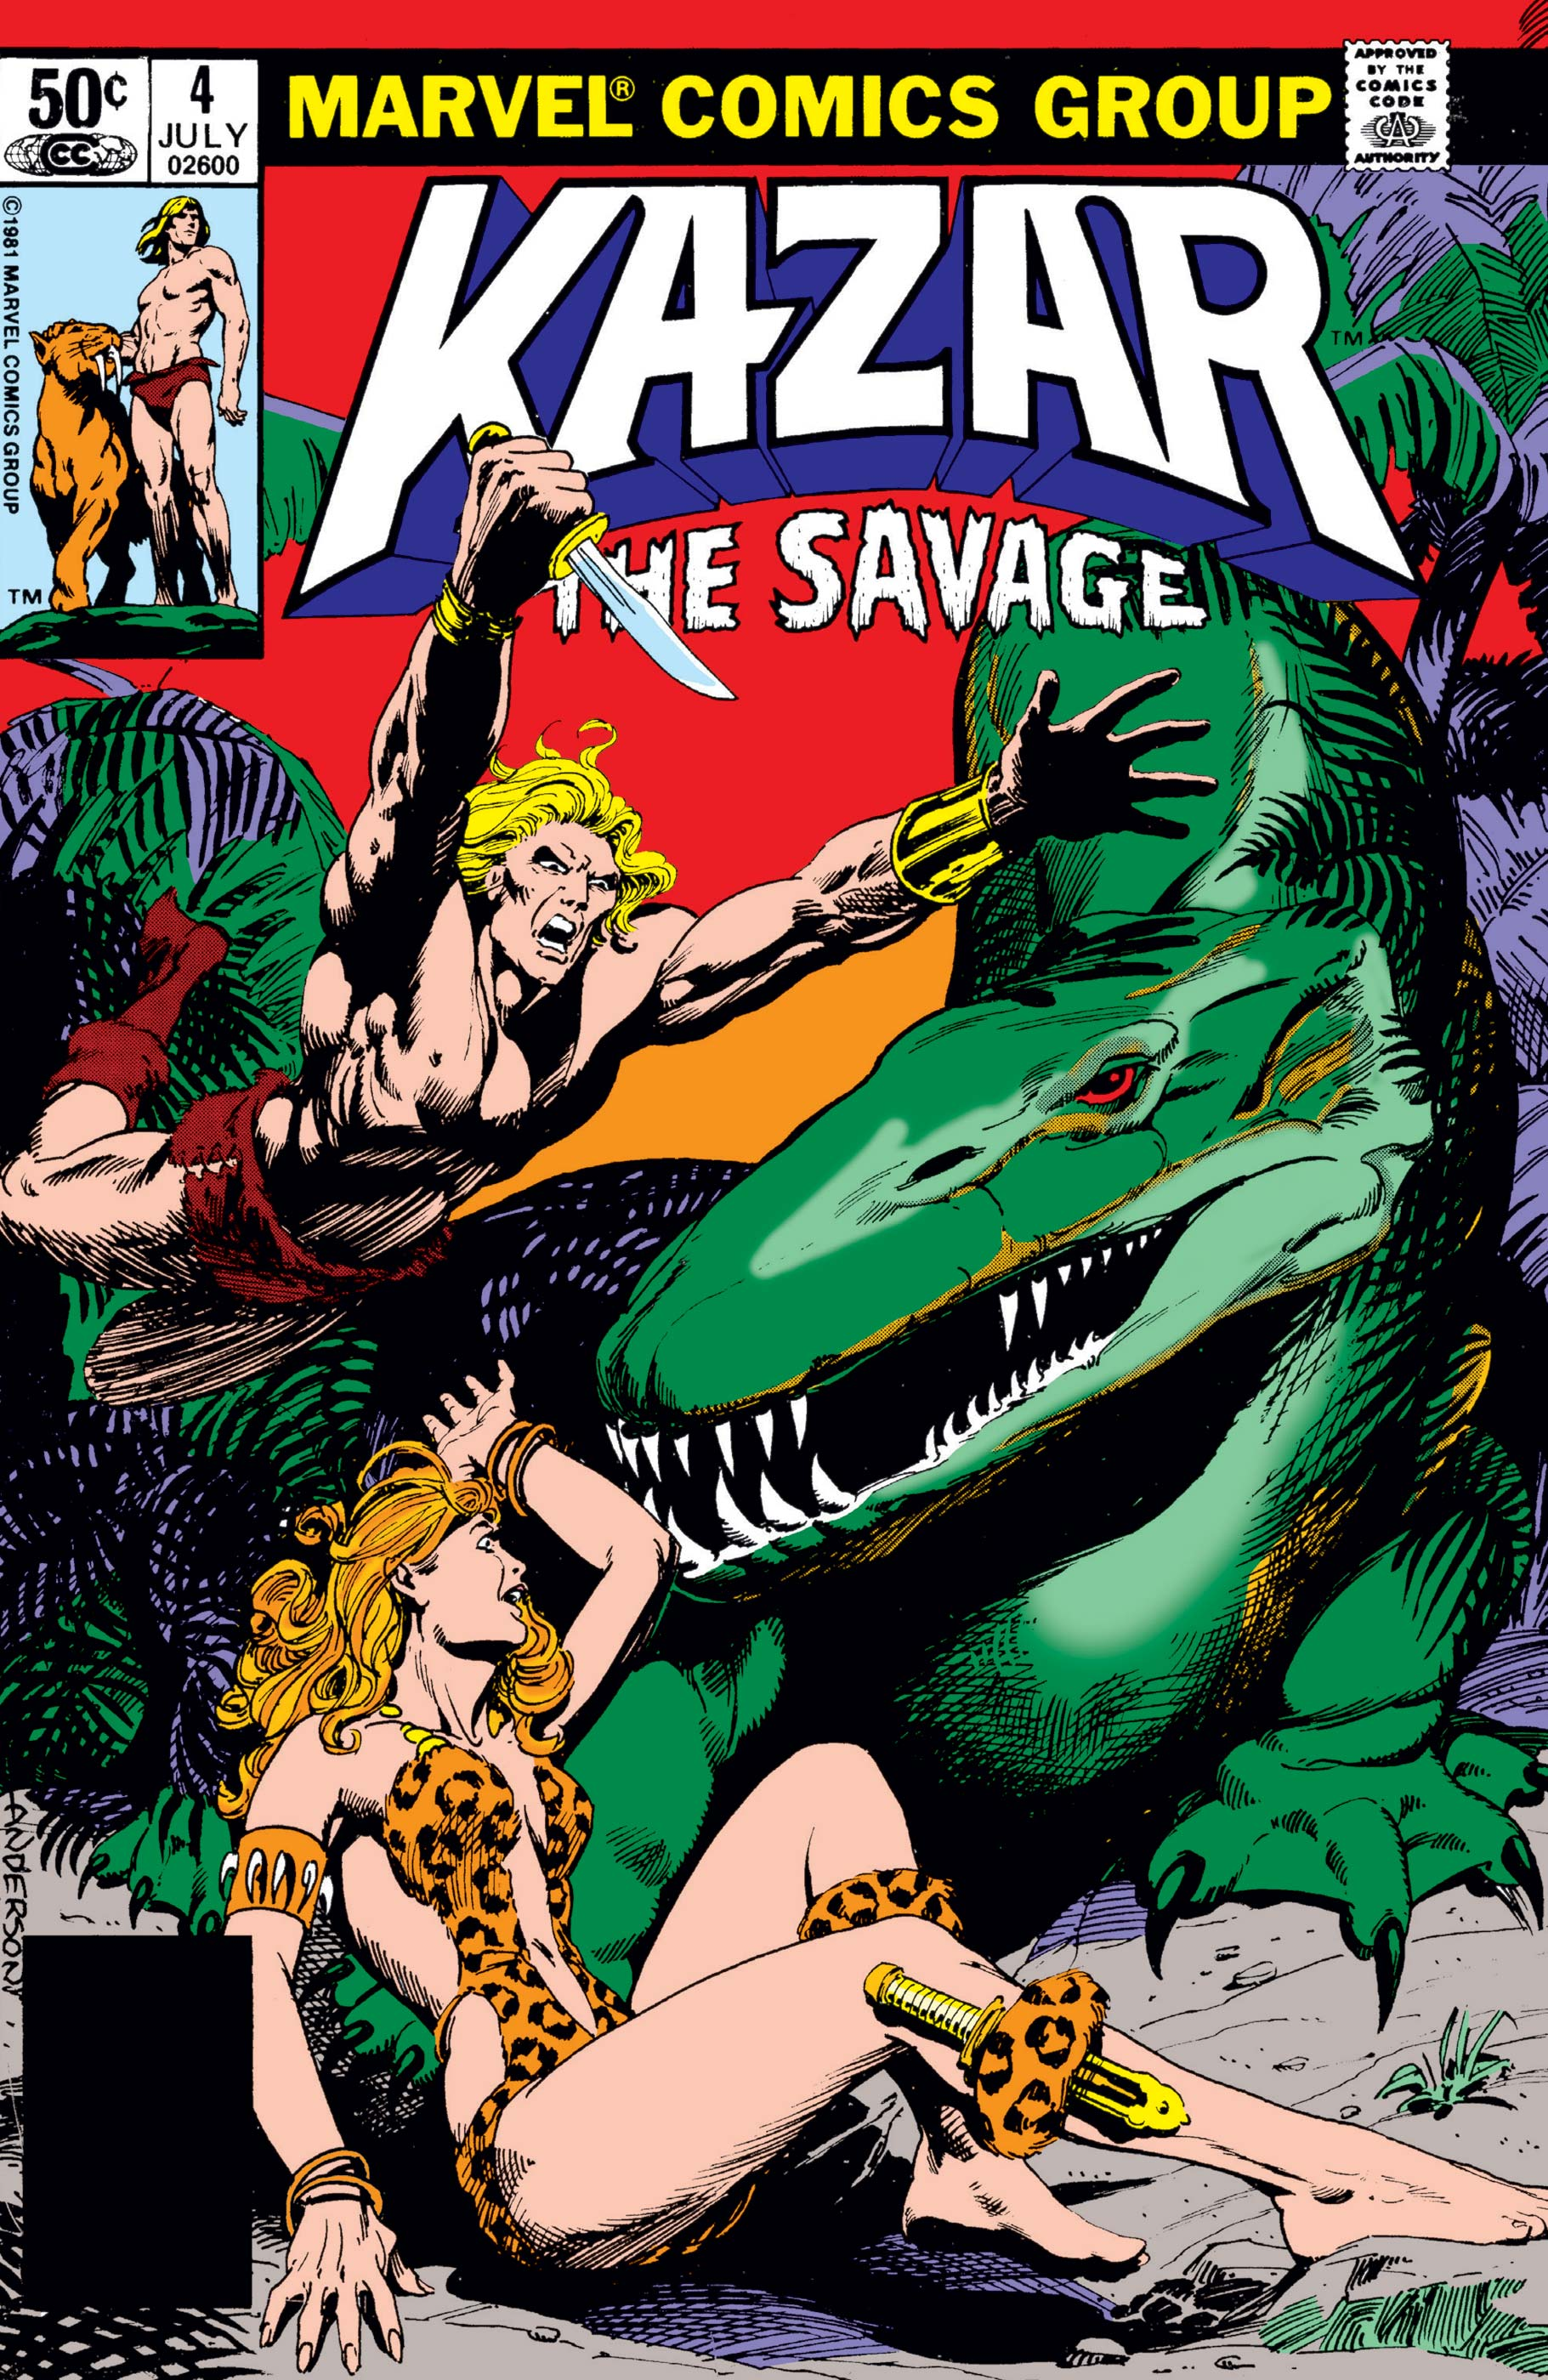 Ka-Zar the Savage (1981) #4